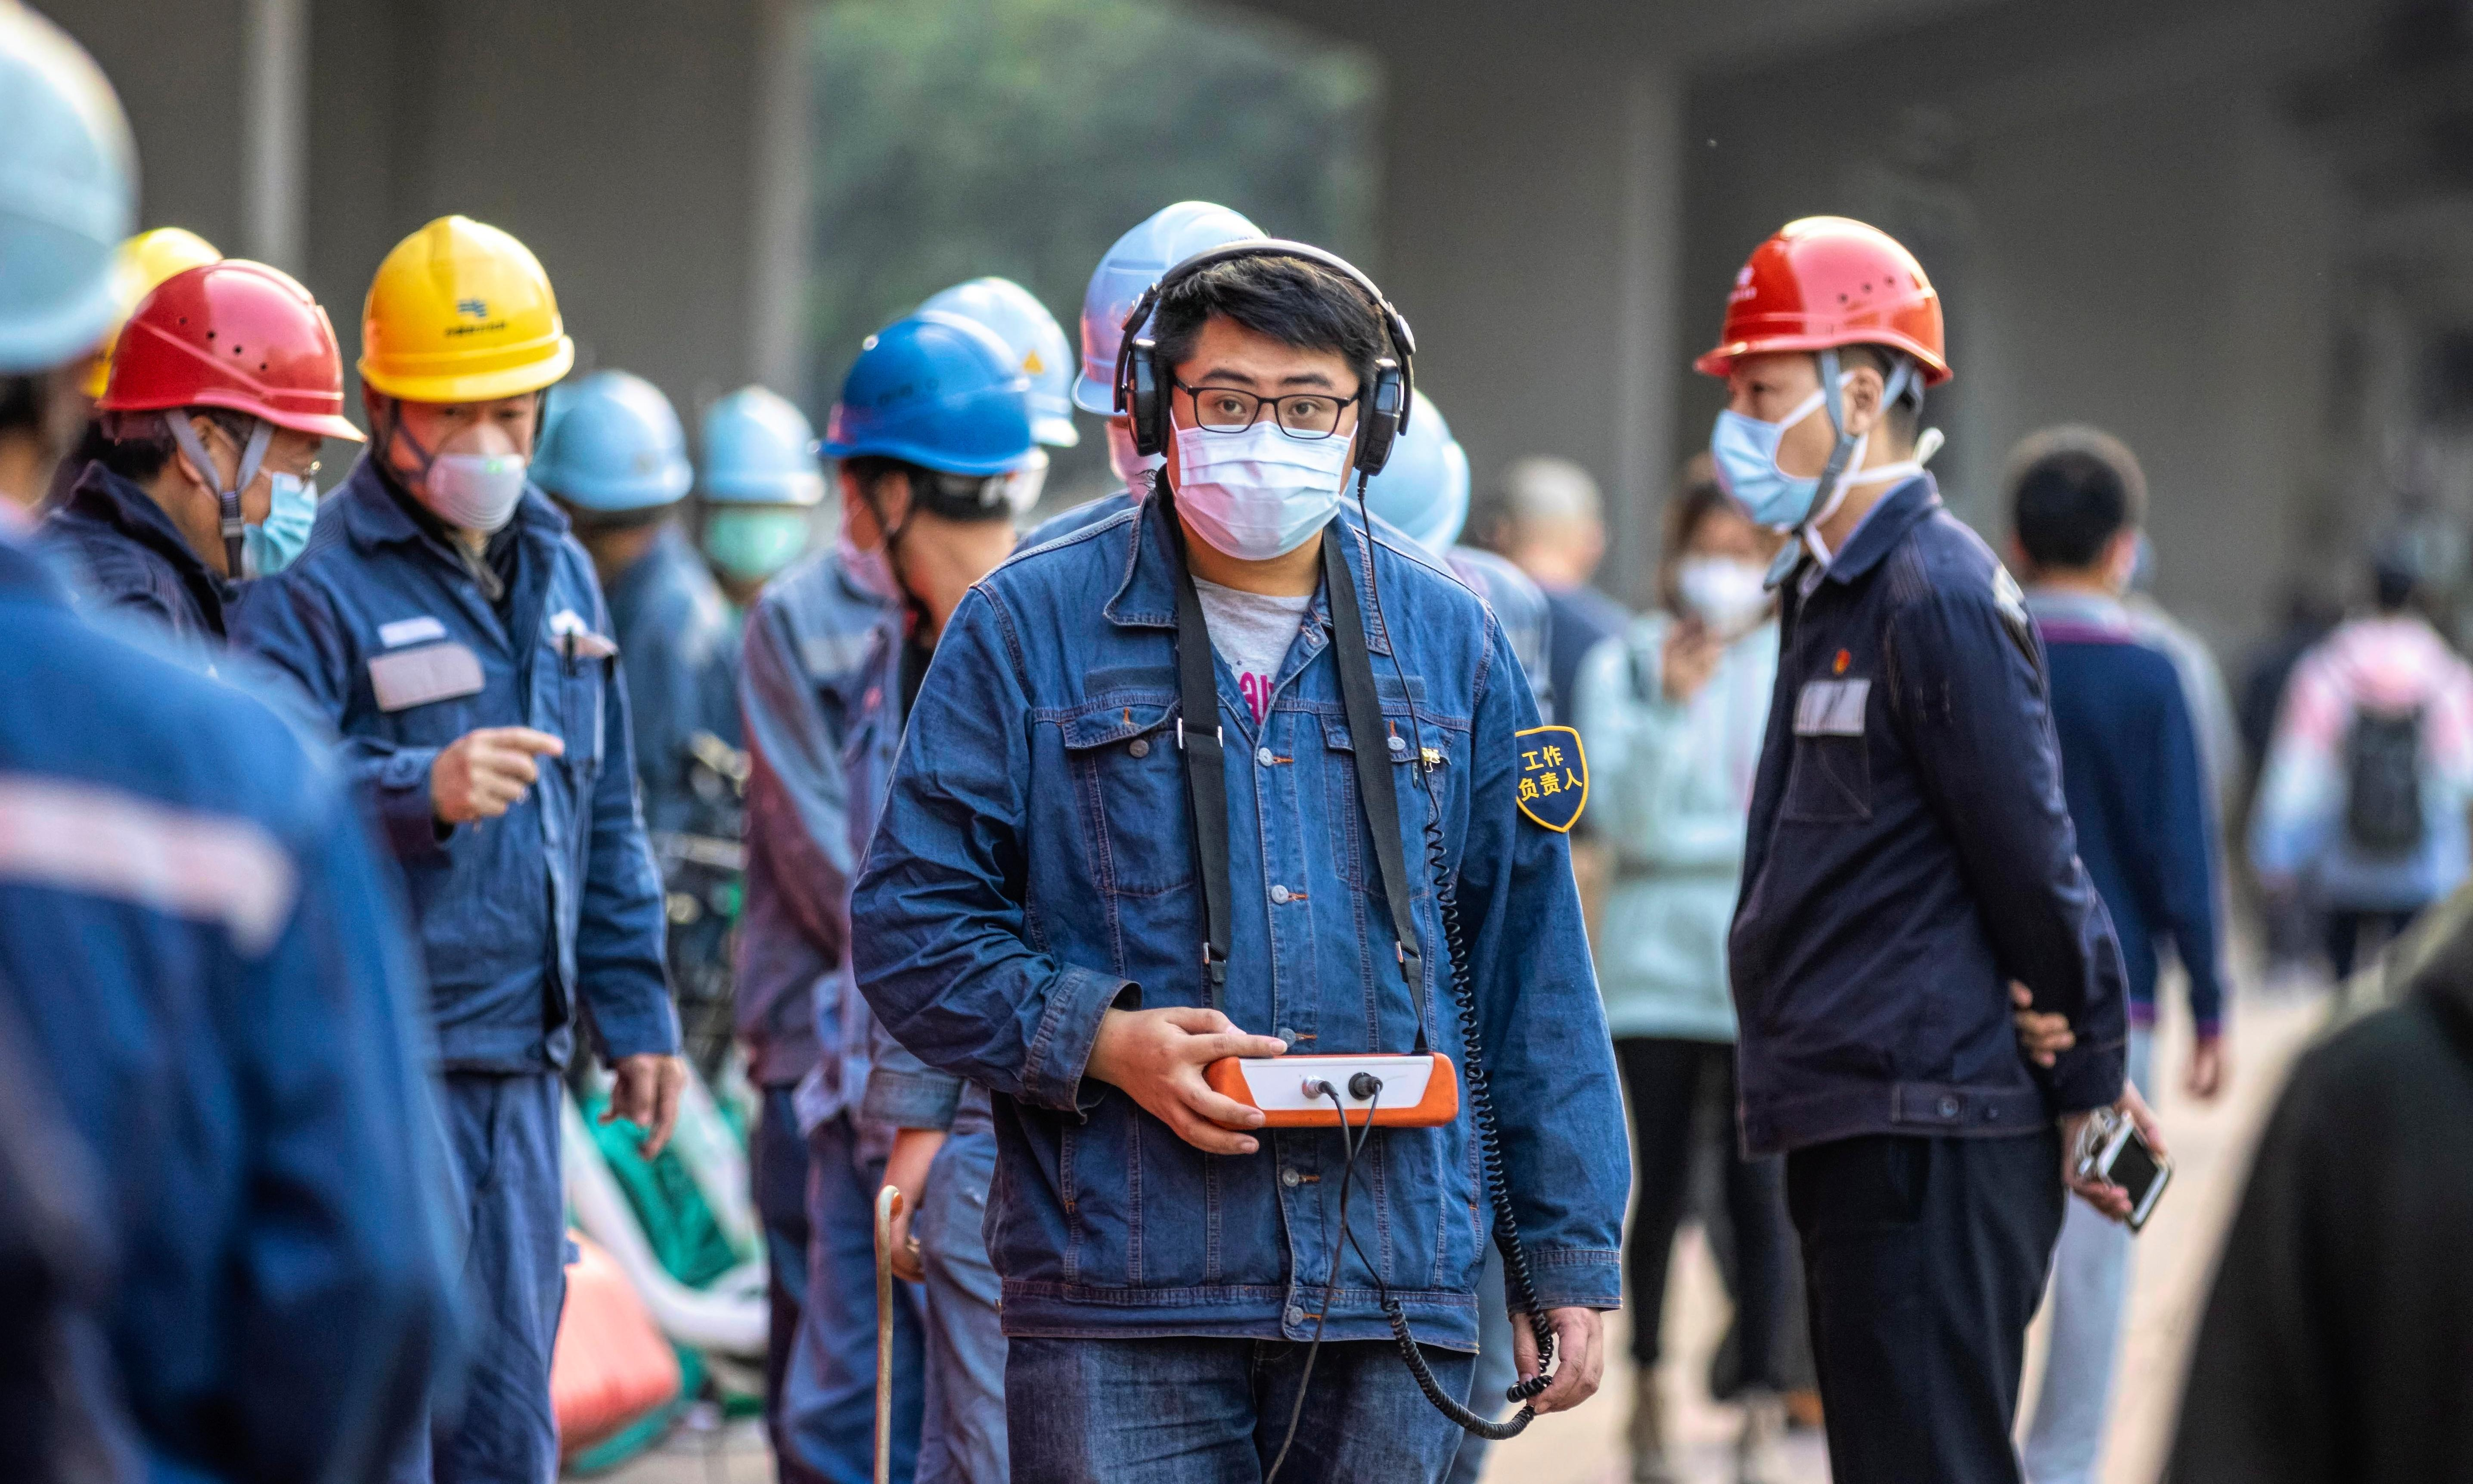 China encourages citizens to return to work as coronavirus hits economy